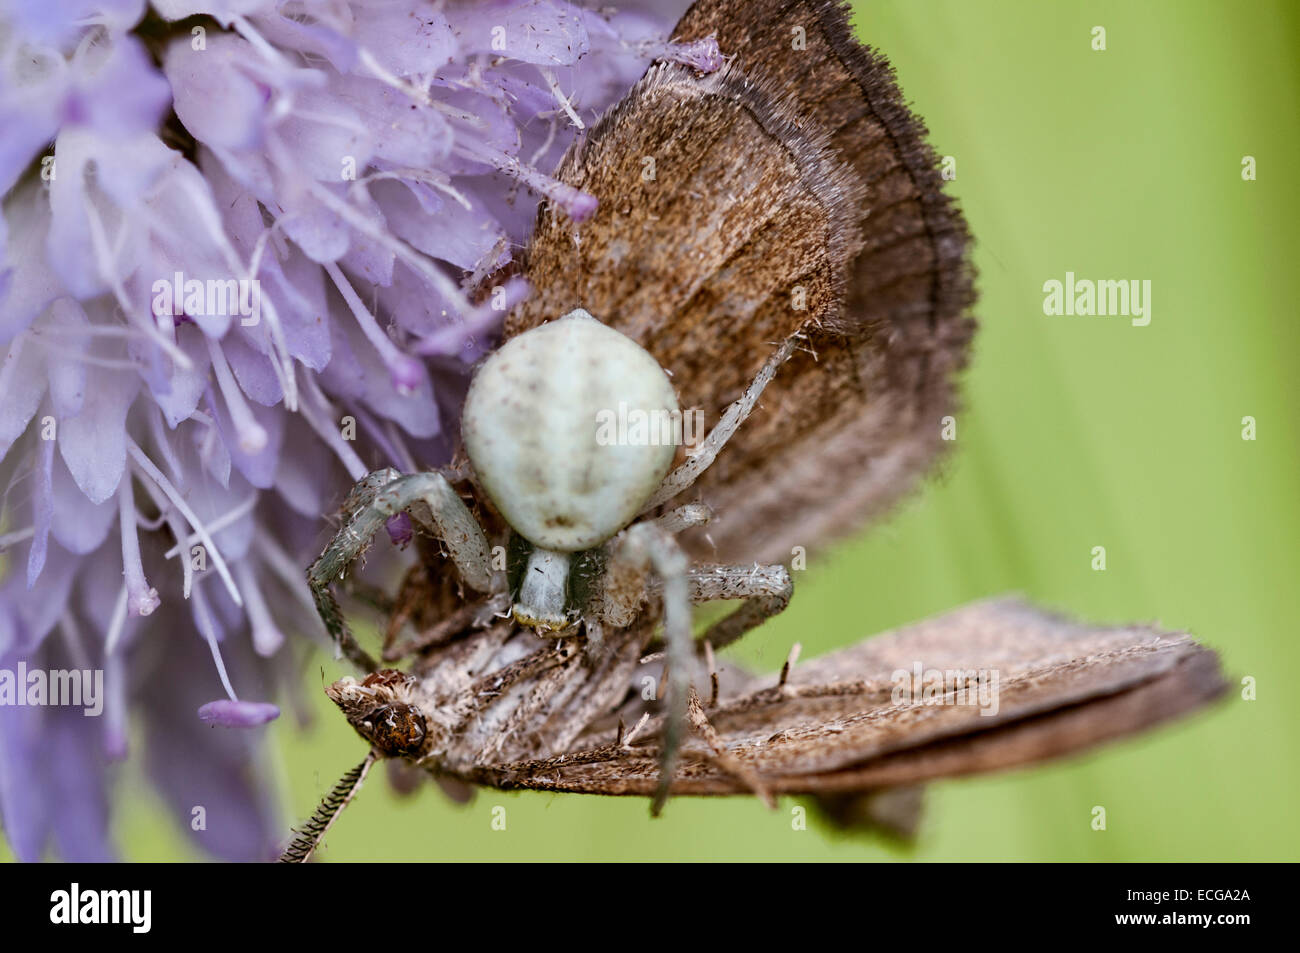 Spider with prey - Stock Image